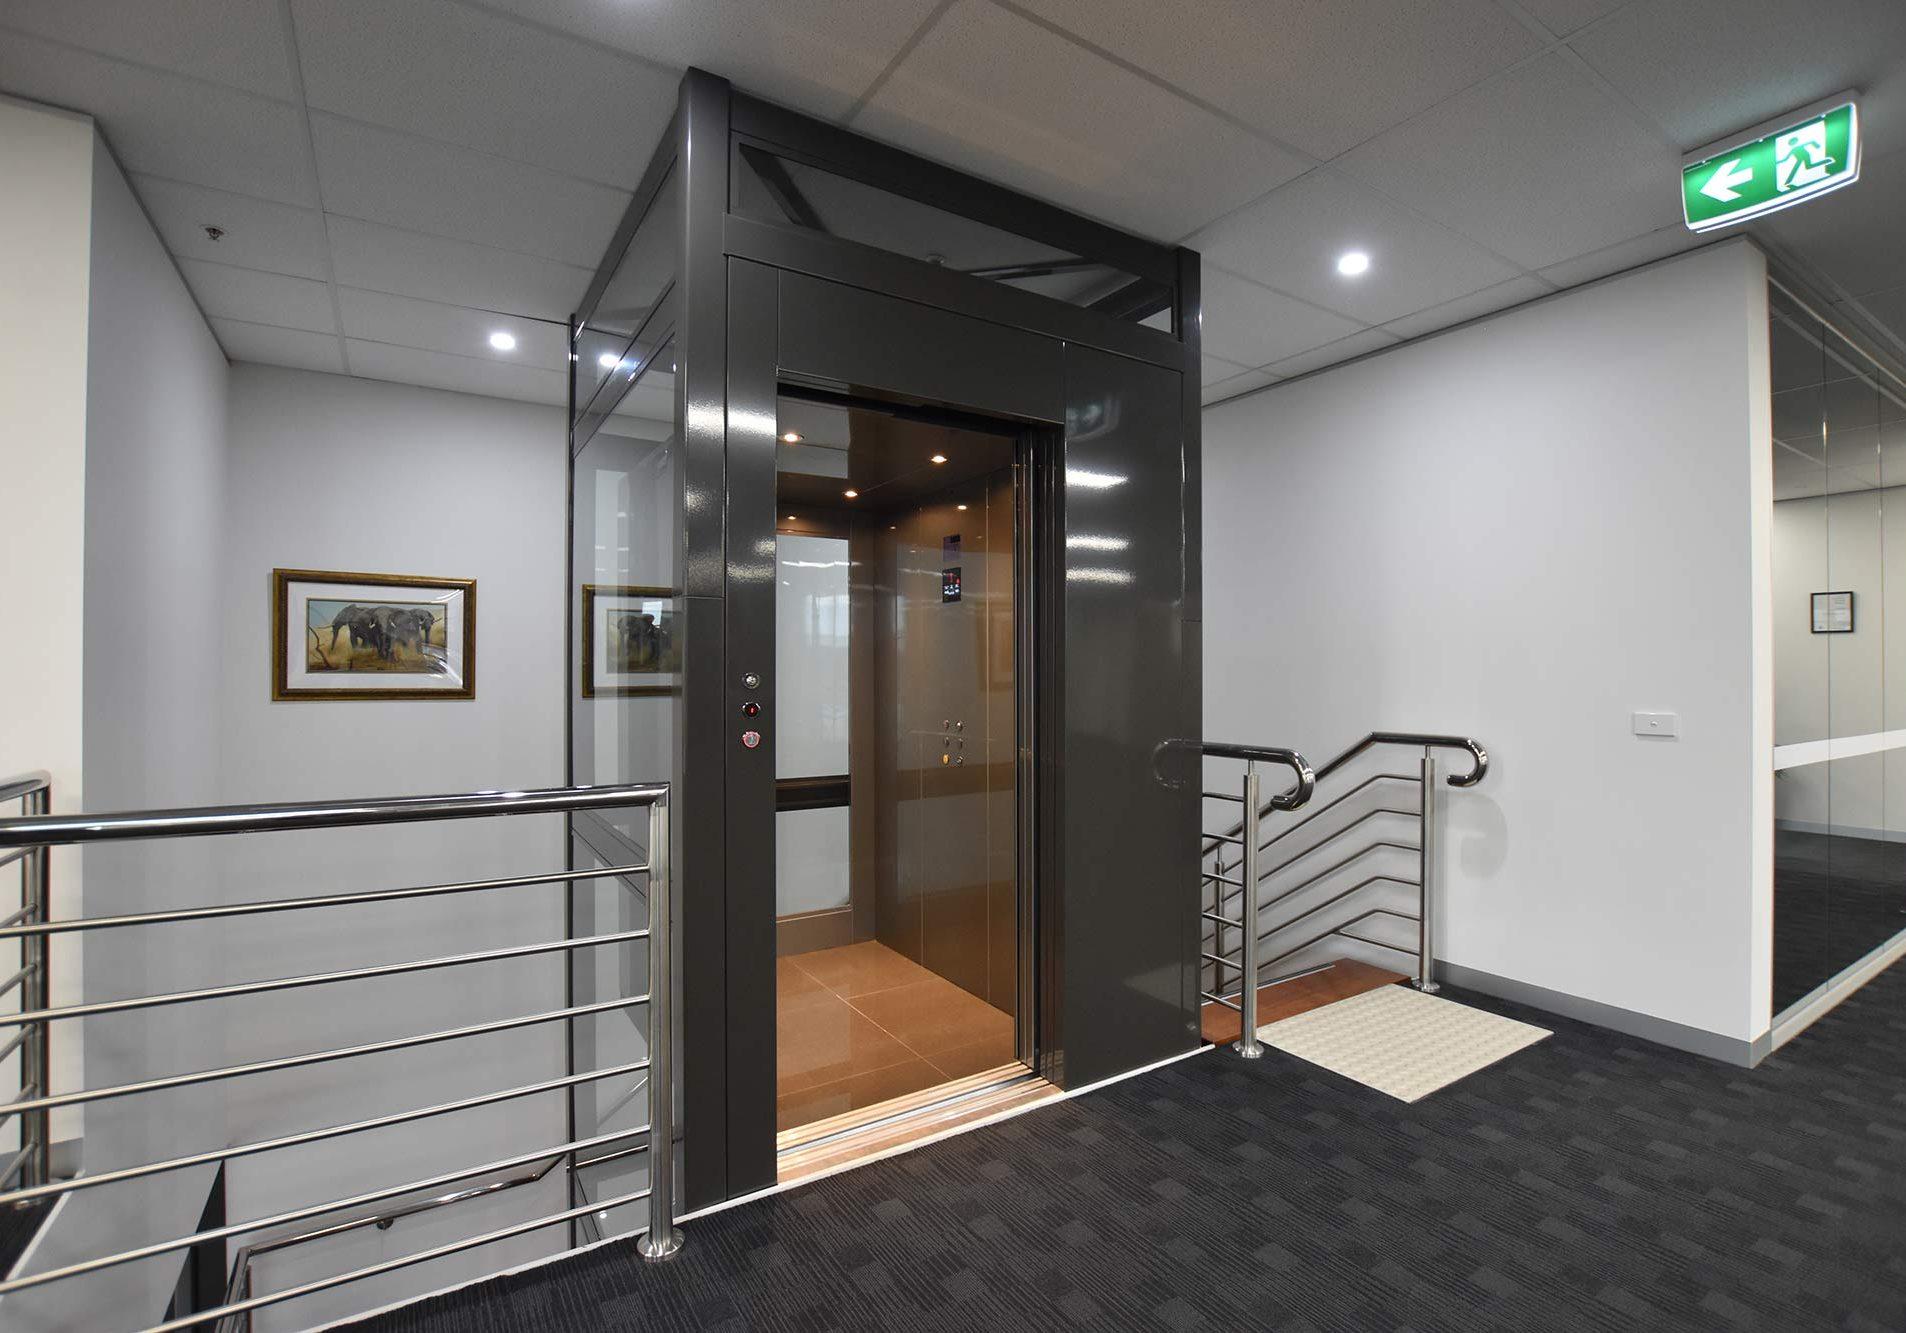 a commercial elevator in a glazed metal structure with clear glass doors and walls. the floor of the elevator is wood. there are metal handrails and stairs which wrap around the lift shaft.